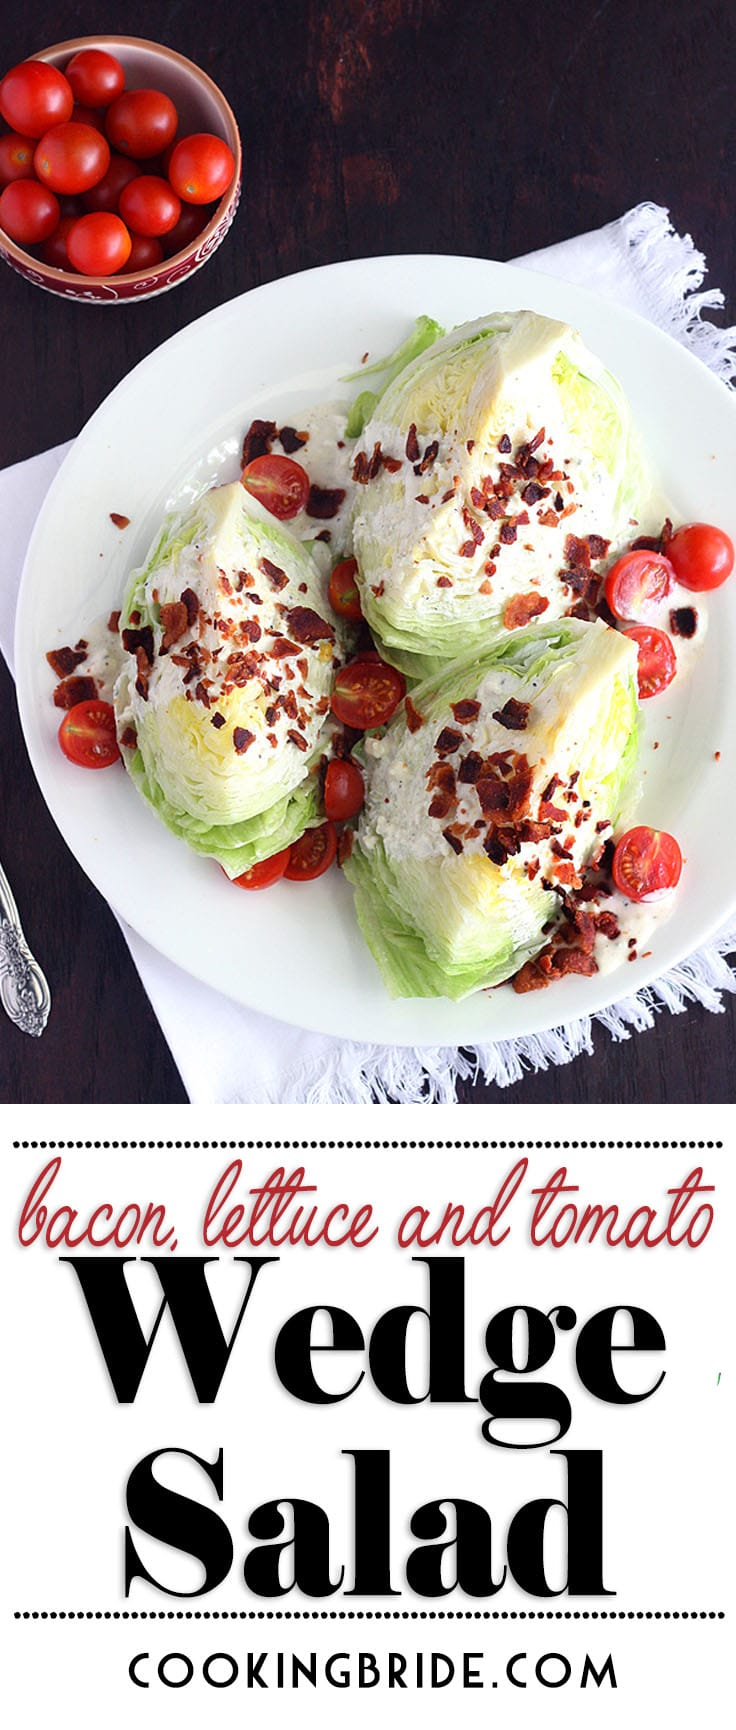 Cool crisp iceburg lettuce is topped with creamy buttermilk, blue cheese dressing, crispy bacon, and tomatoes in this BLT Wedge Salad recipe.